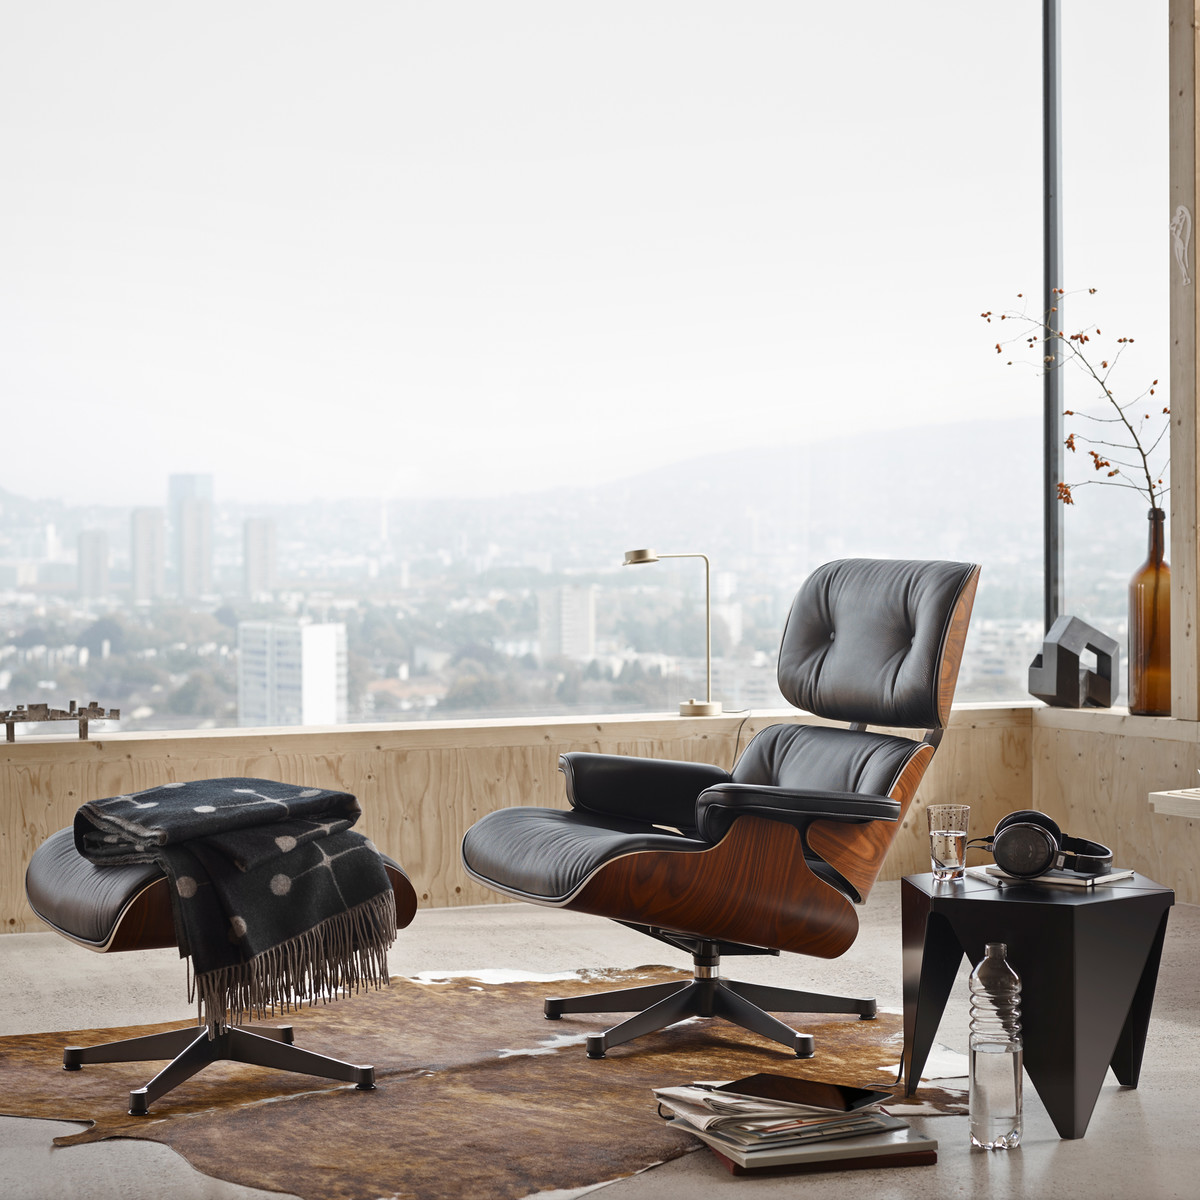 Eames Lounge Sessel Is Eames Lounge Chair The Best Gaming Chair